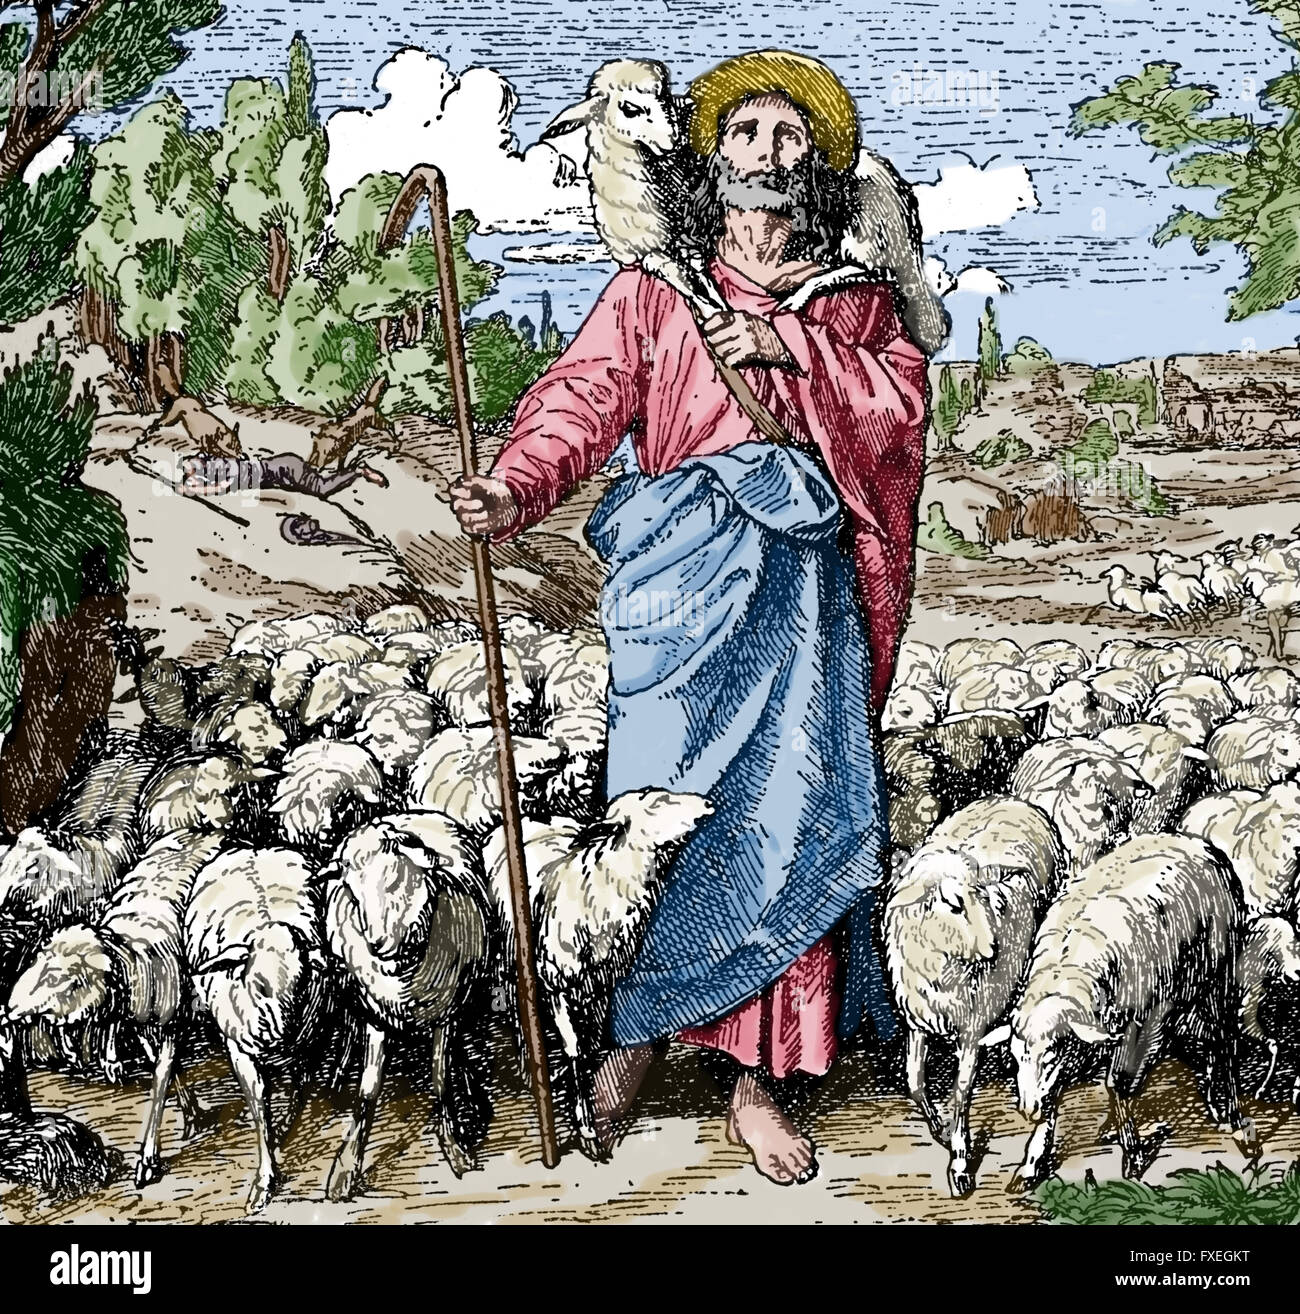 Parable of the Good Shepherd. Engraving, 19th century. Color. - Stock Image